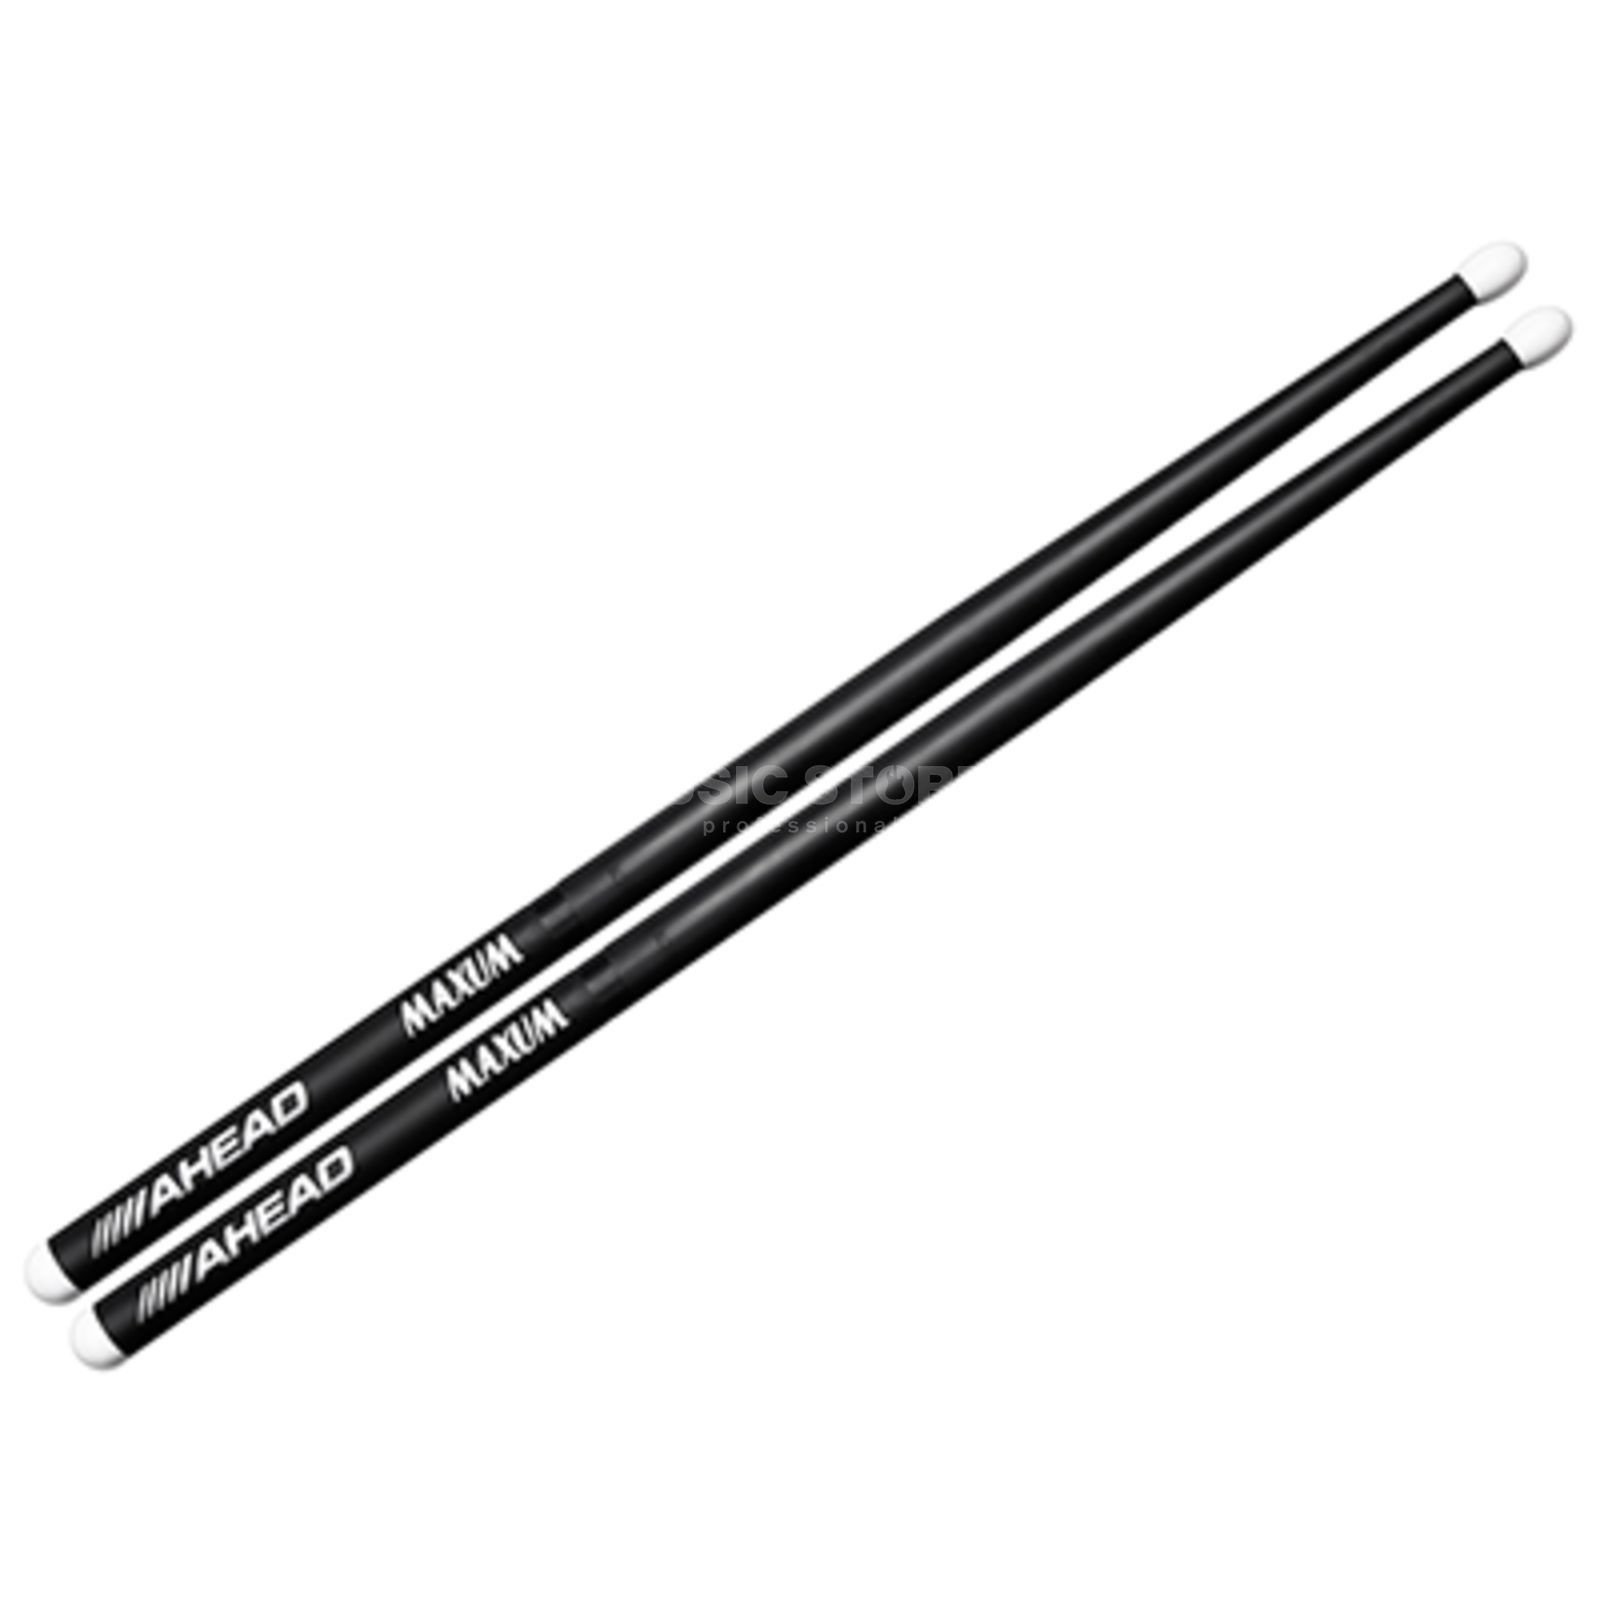 Ahead Sticks MS Aluminium Sticks Long Taper Produktbild